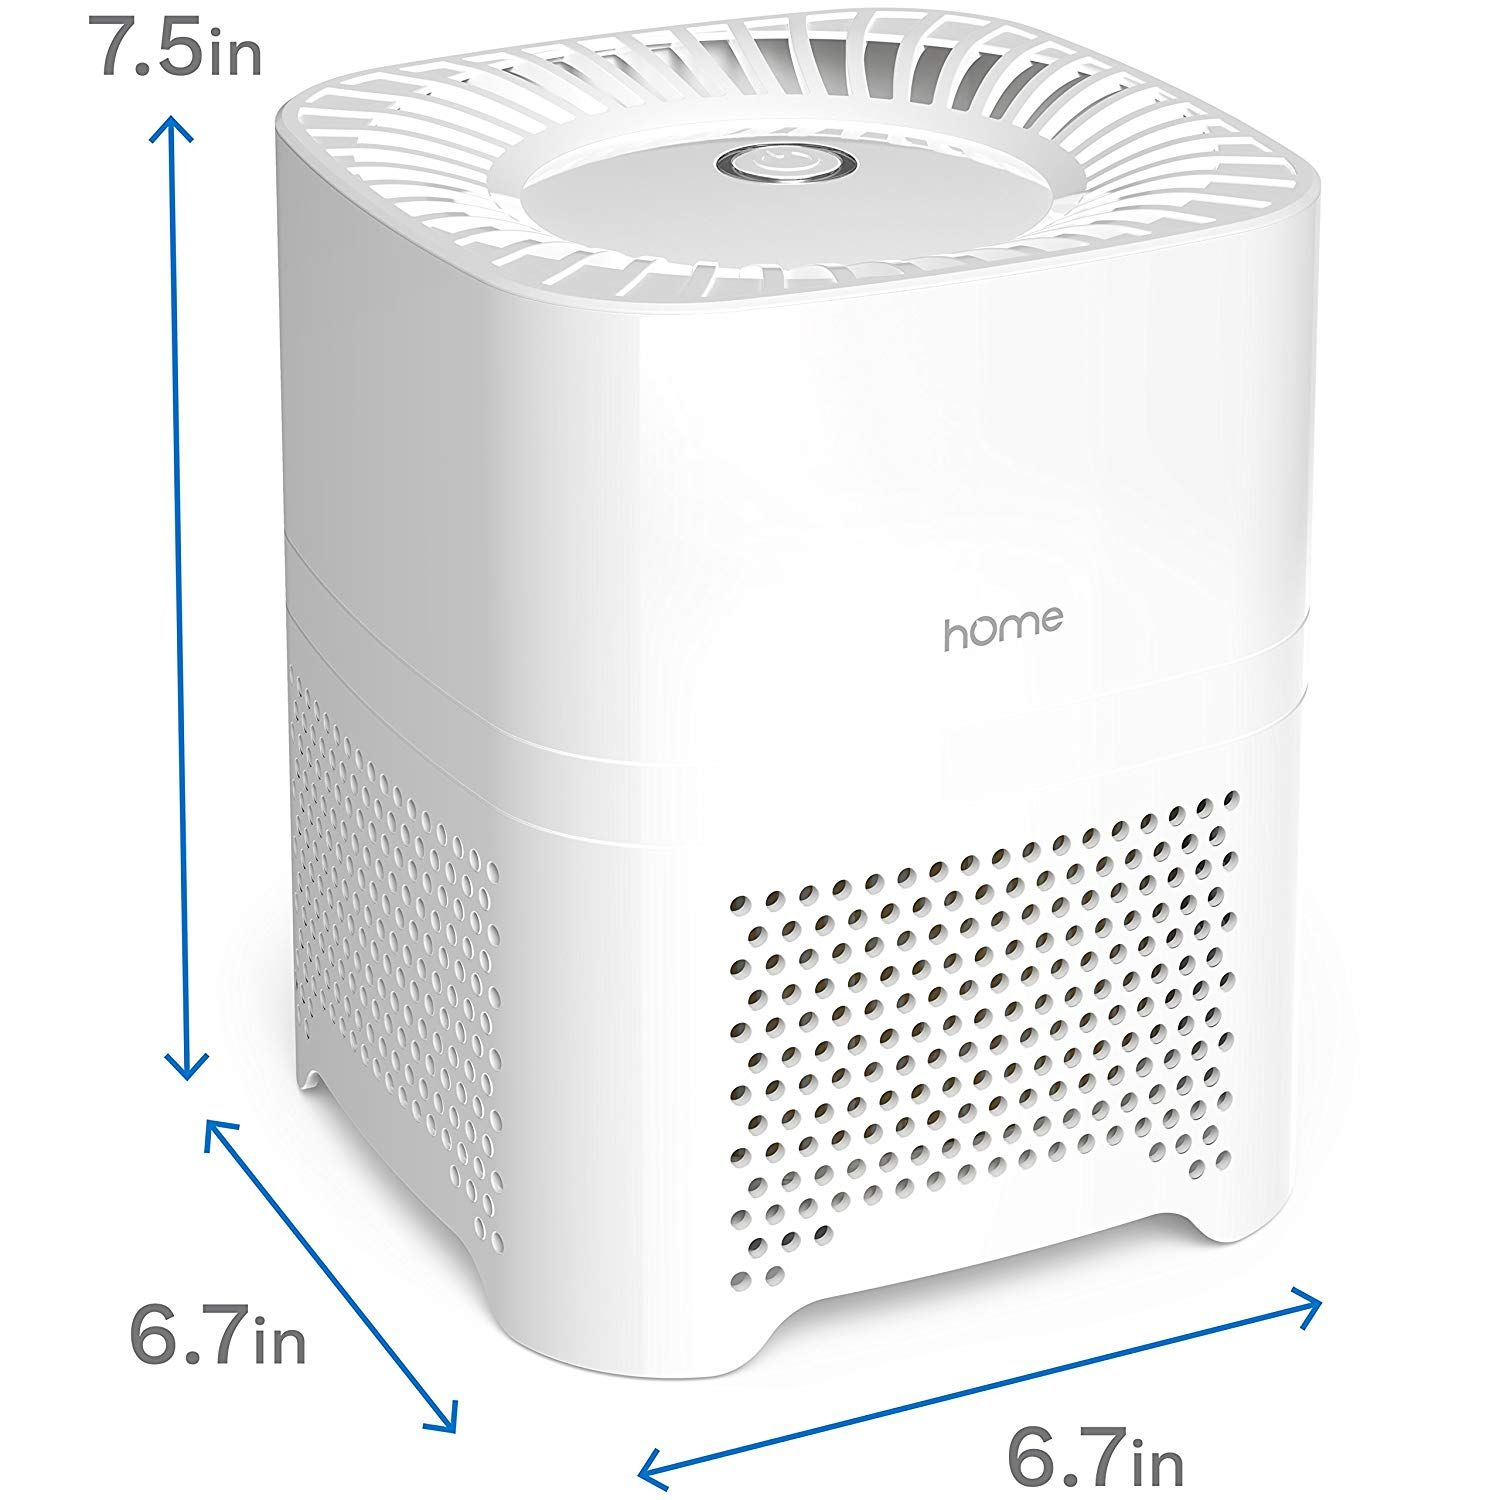 hOmeLabs 3-in-1 Compact Ionic HEPA Air Purifier Quietly Ionizes and Purifies Air